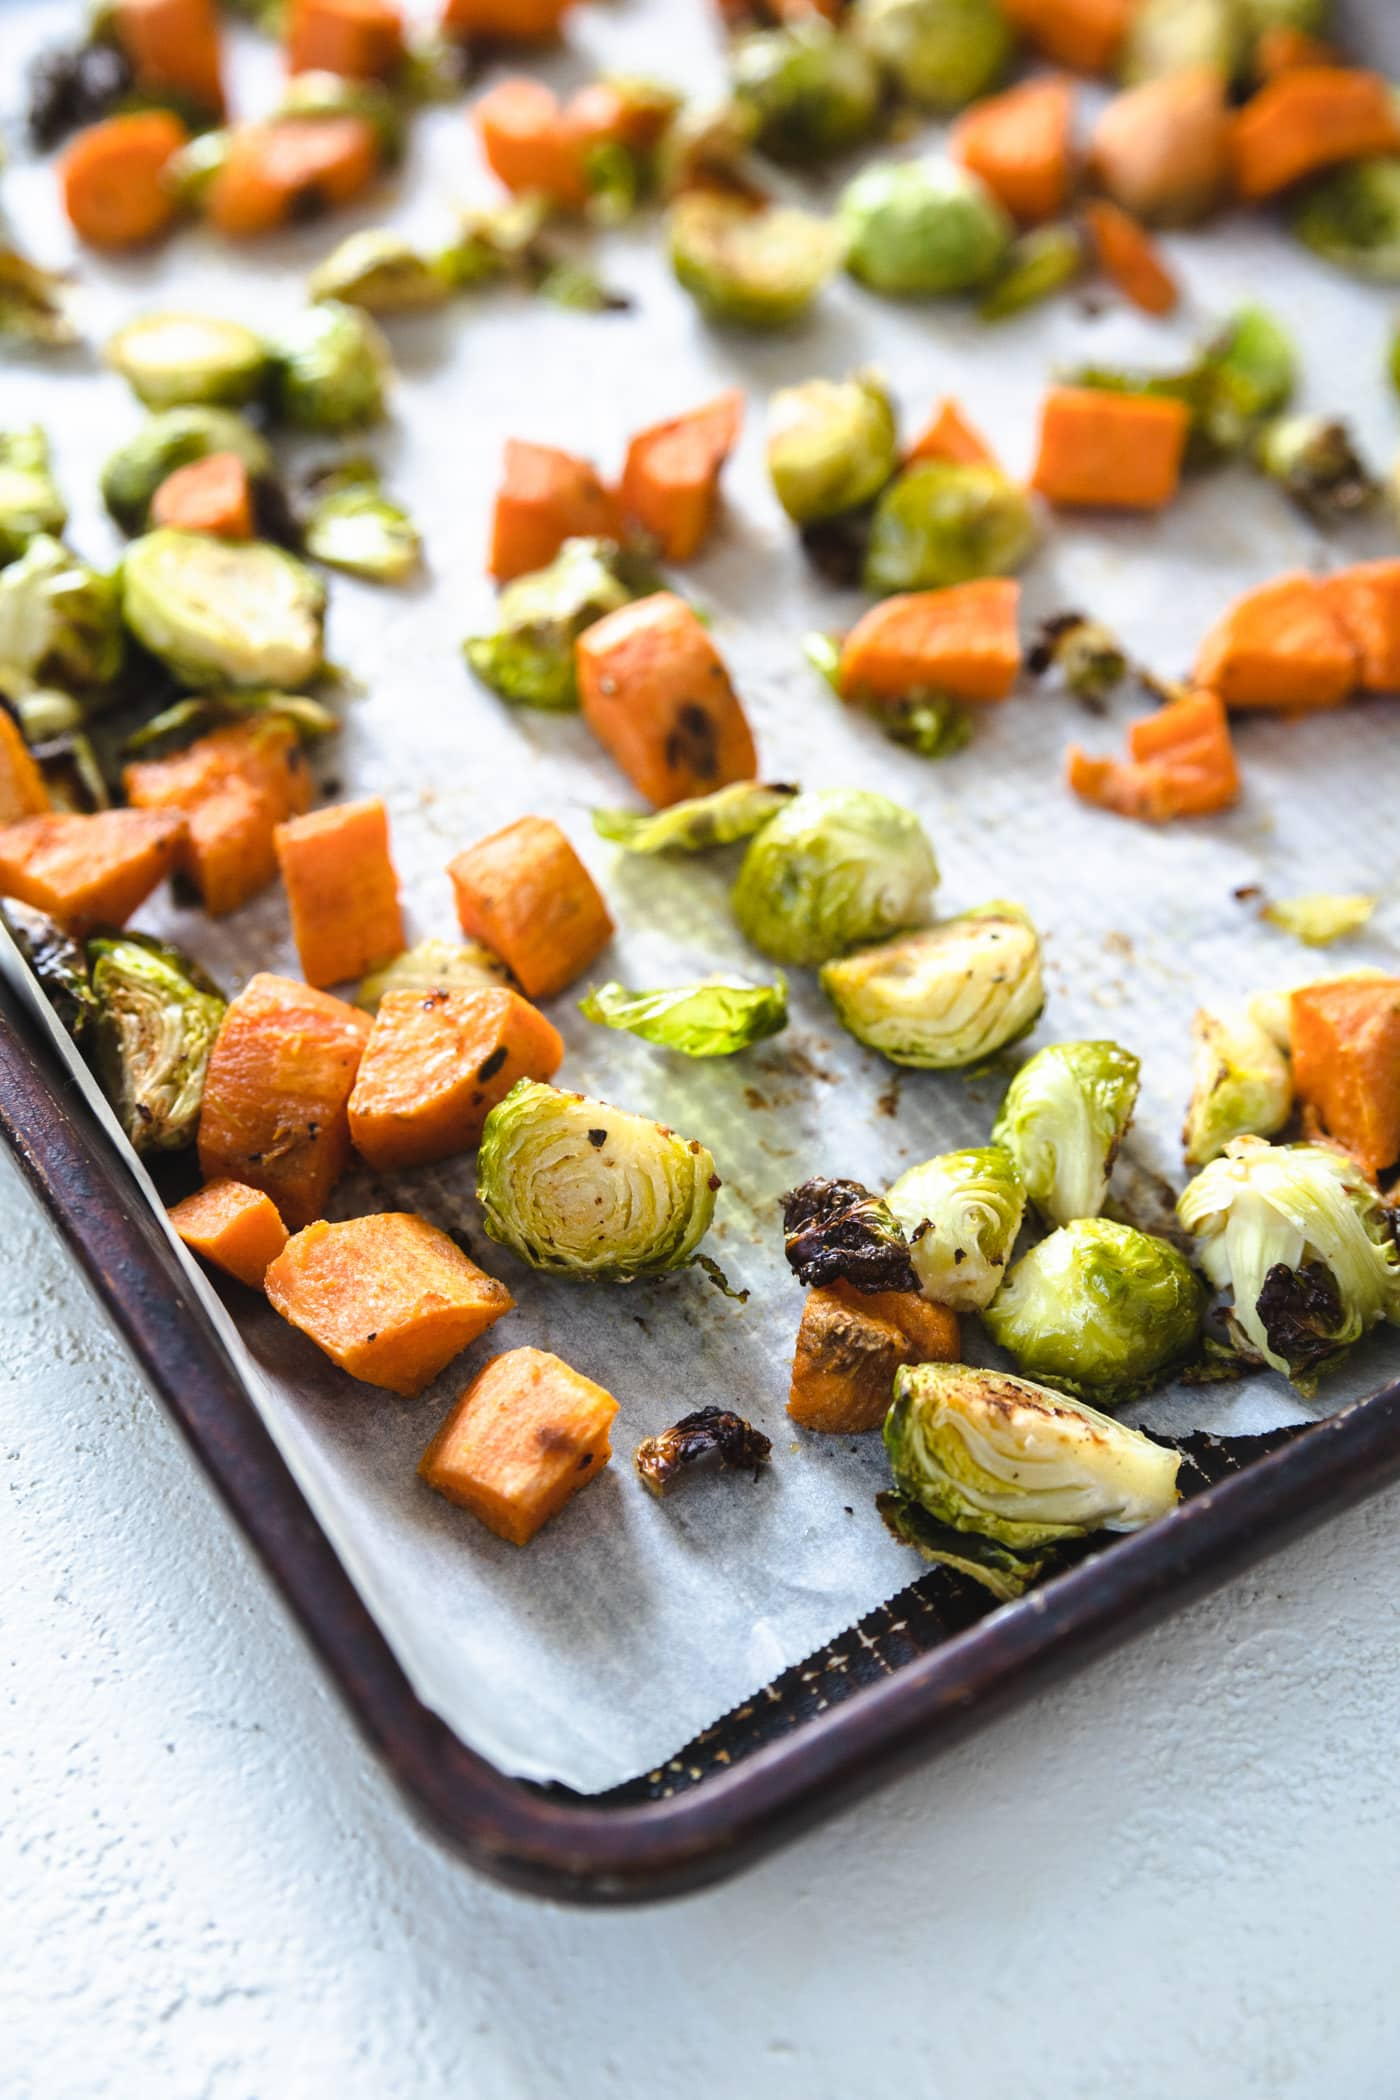 A baking sheet lined with parchment paper with sweet potatoes and brussel sprouts on it.